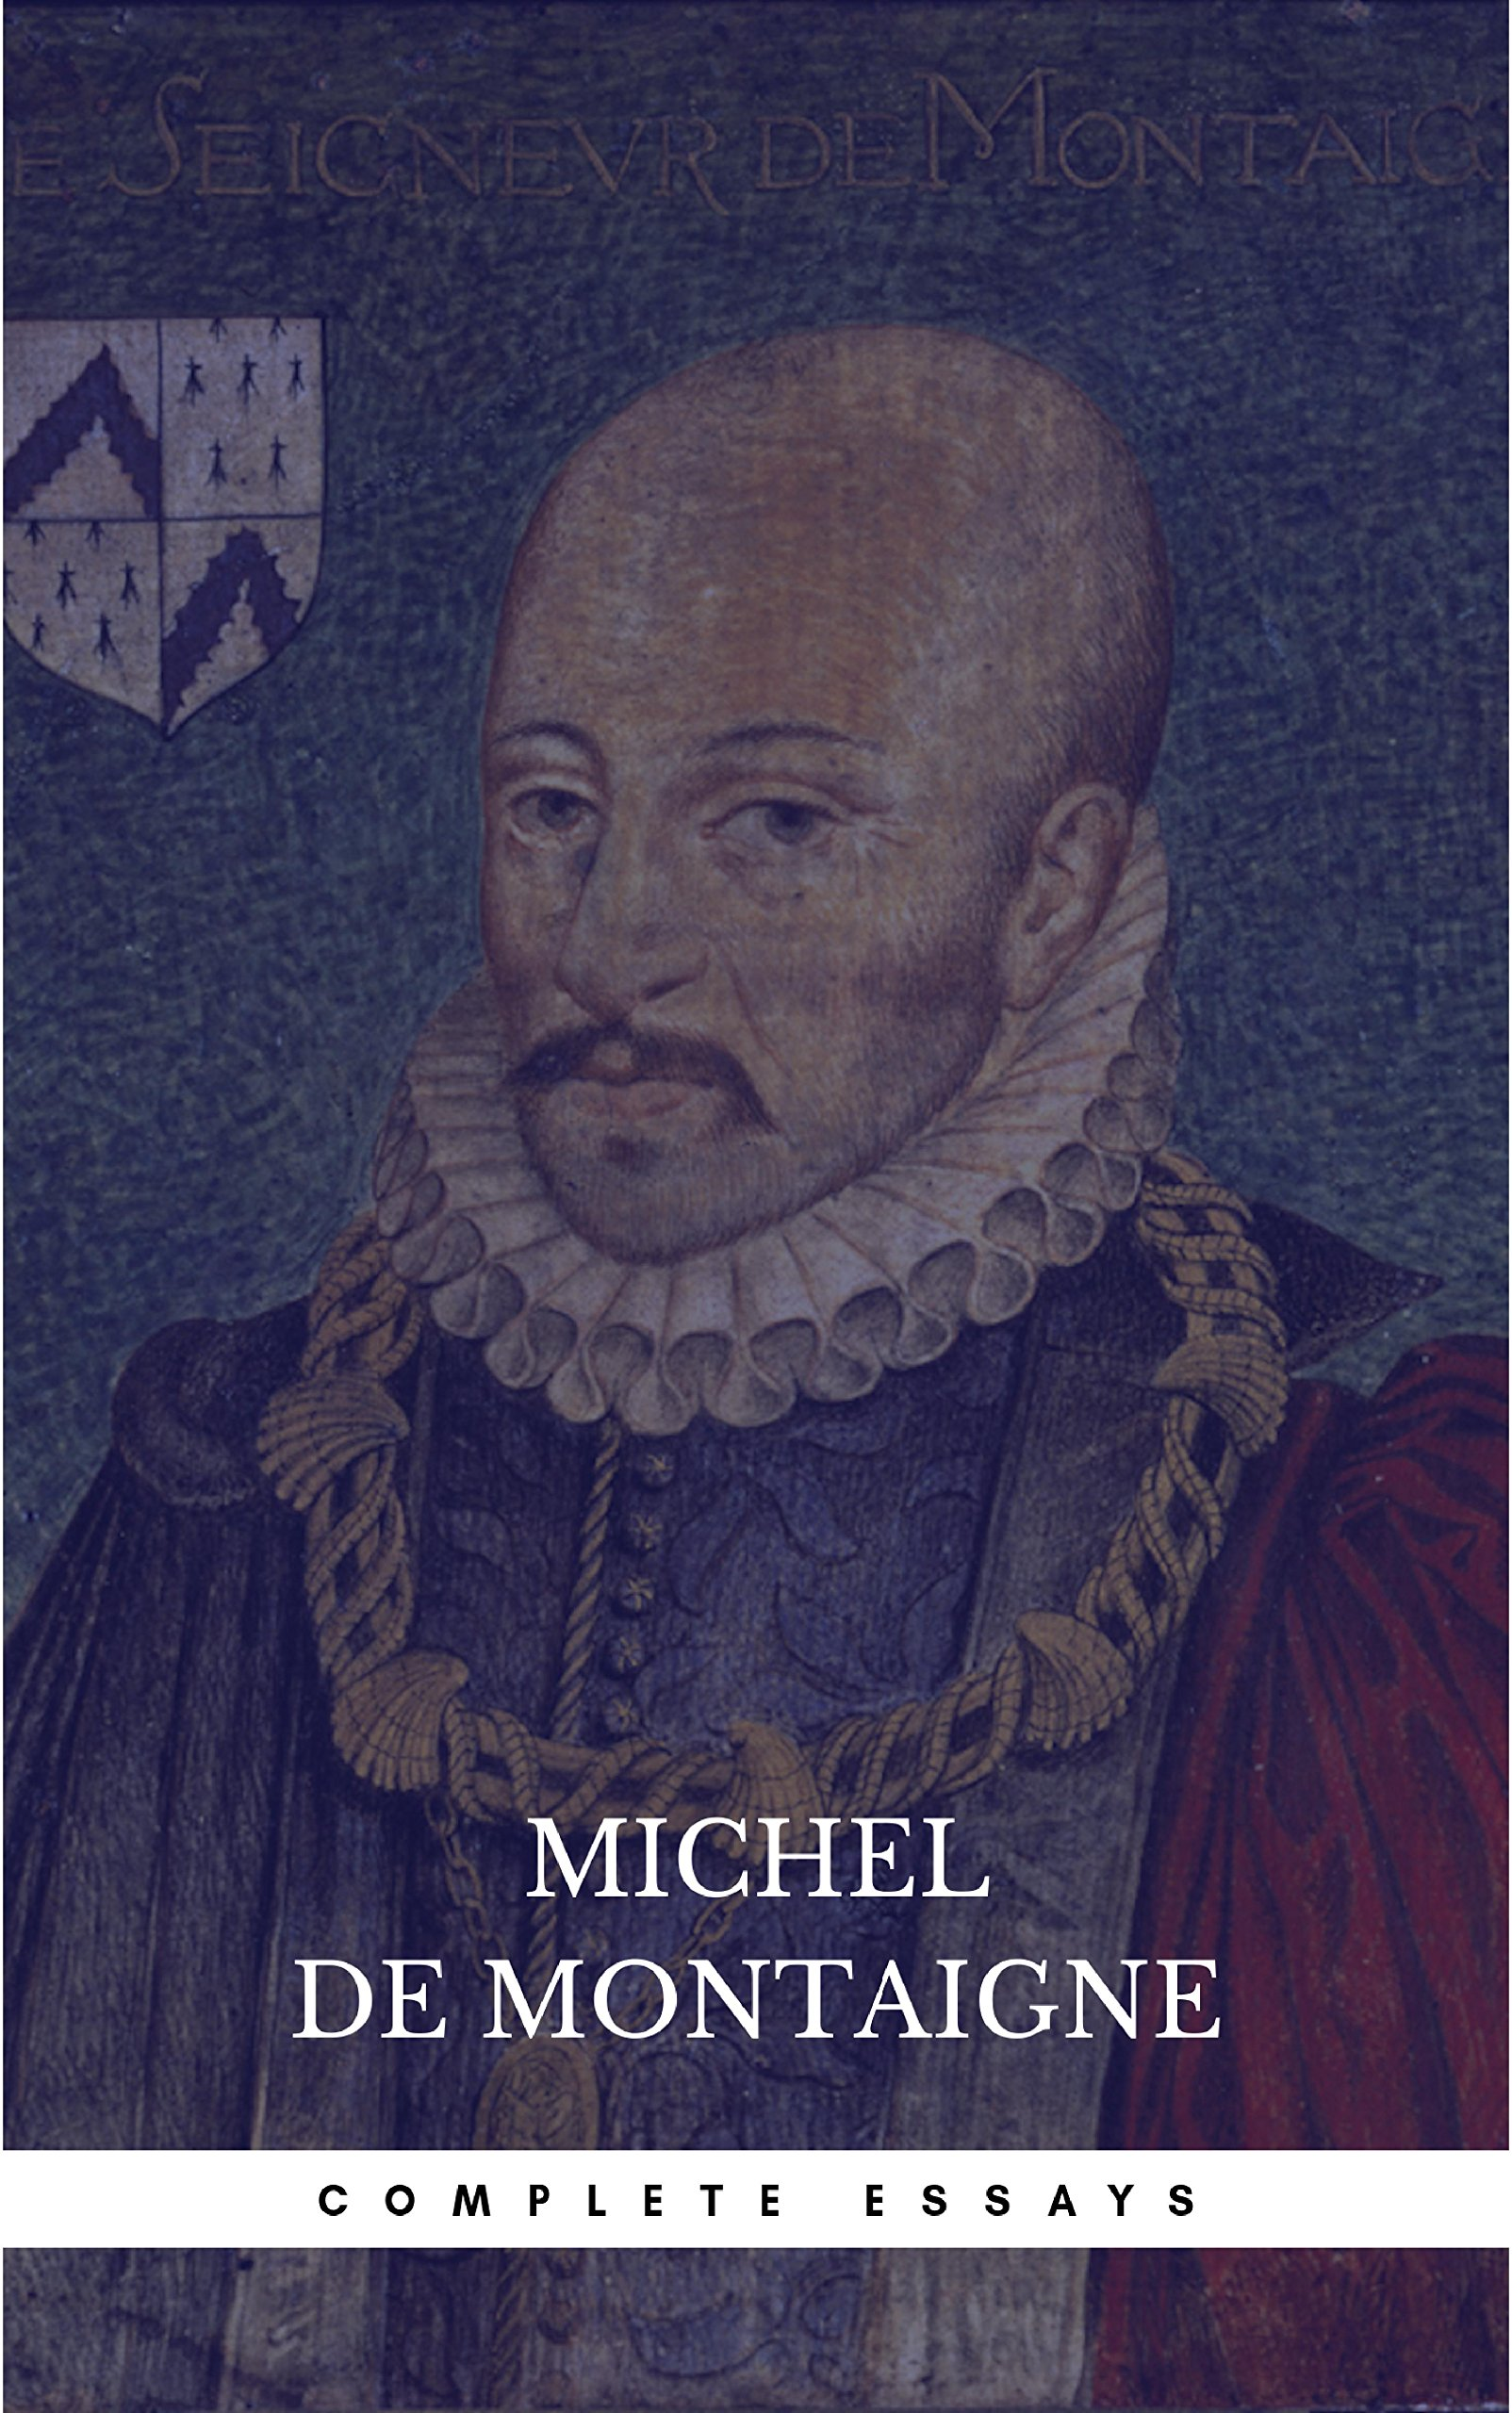 Image OfMichel De Montaigne - The Complete Essays (English Edition)